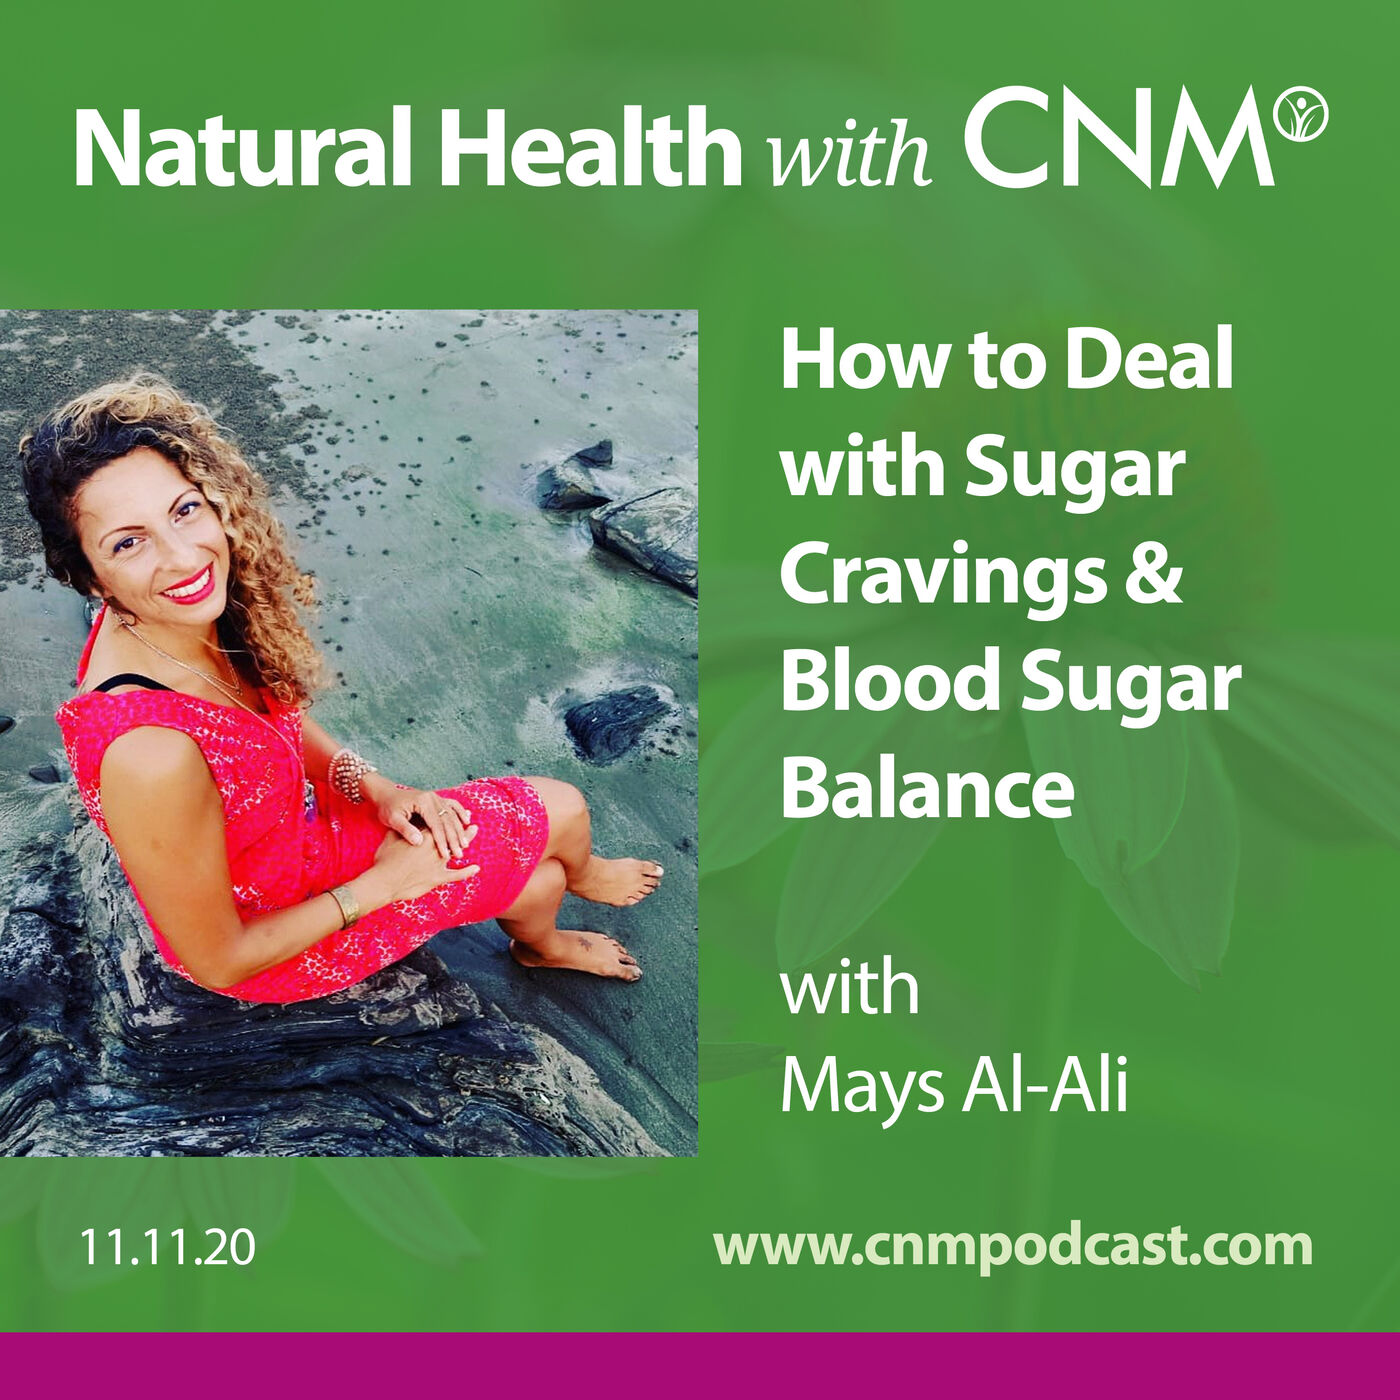 How to Deal with Cravings & Blood Sugar Balance with Mays Al-Ali